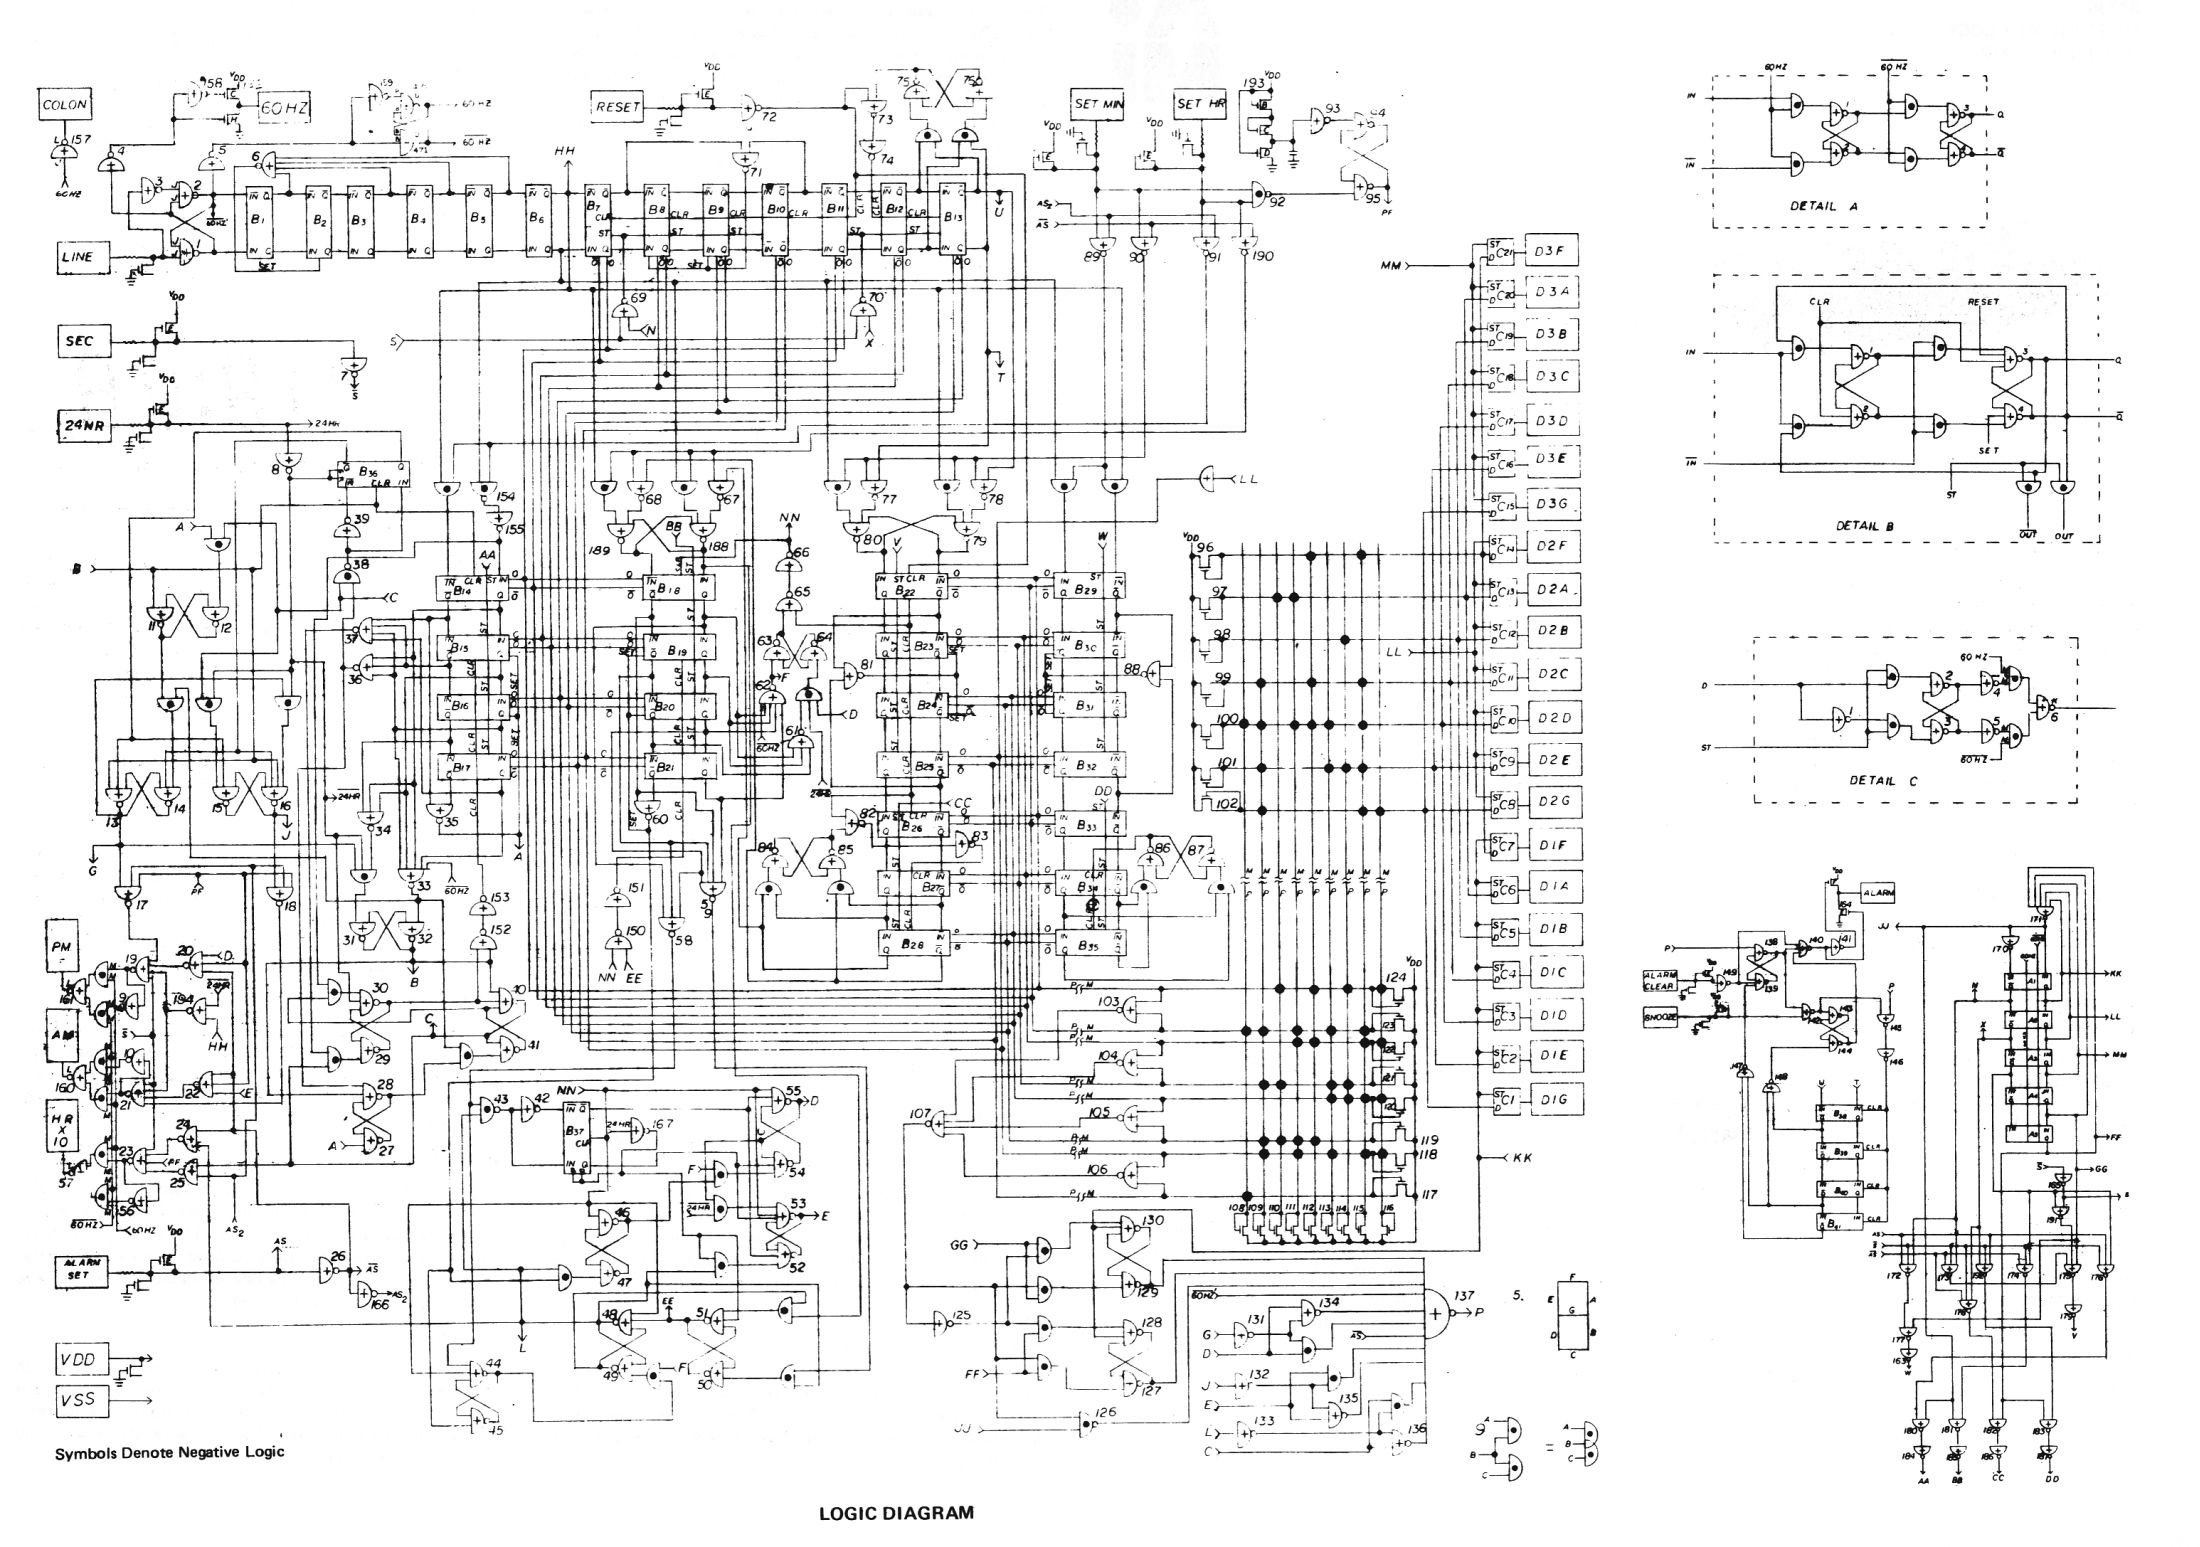 Vintage Digital Clock Circuits Pro Audio Design Forum Circuit Diagram Electronics Students Wiring Ami S1736 Logic In Large Format Https Images Iagram